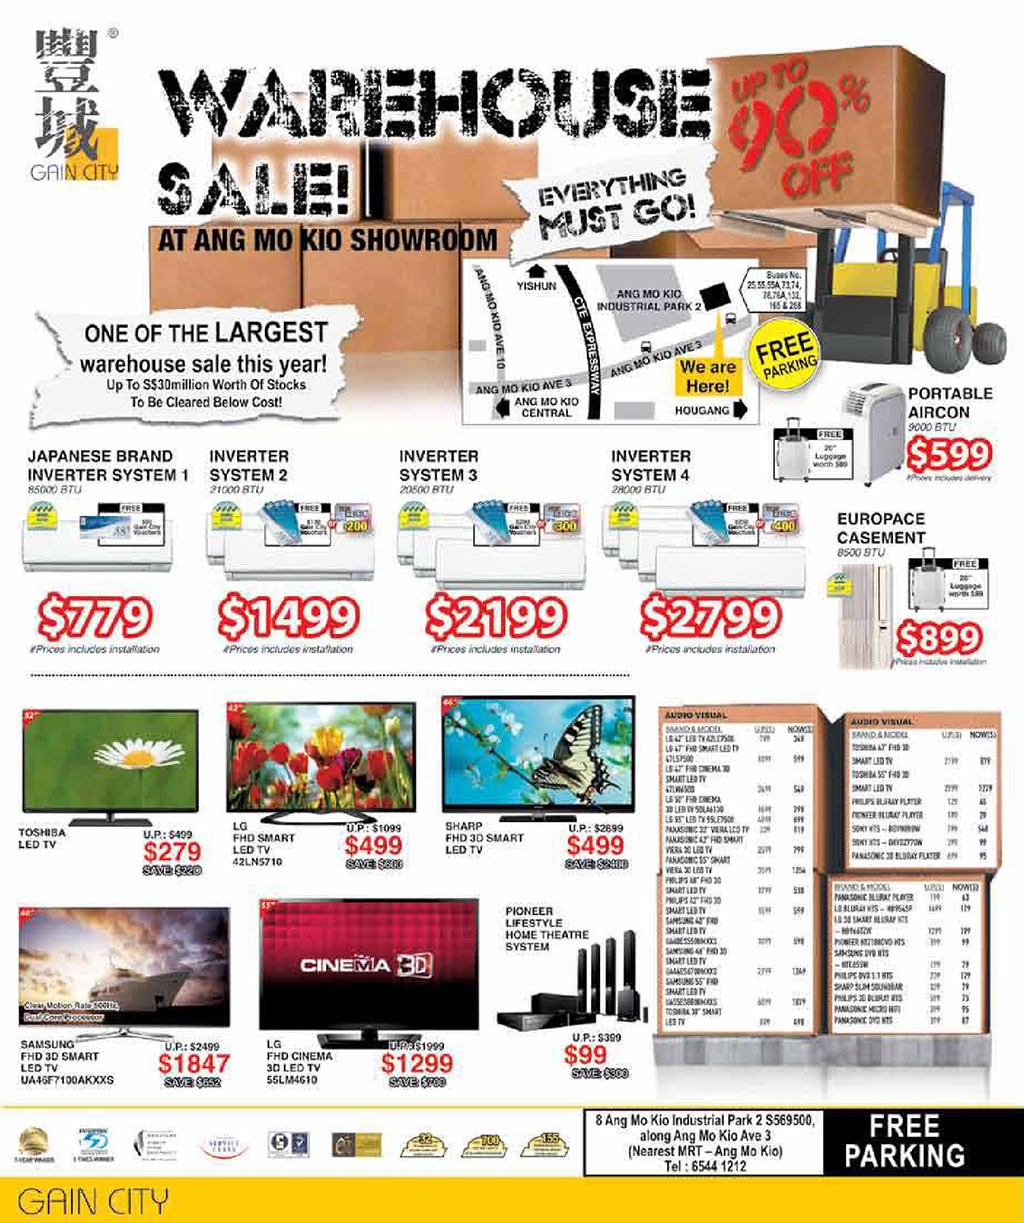 Gain City Warehouse Sale @ Ang Mo Kio Showroom February 2014: Up to 90% Off Electronics & More